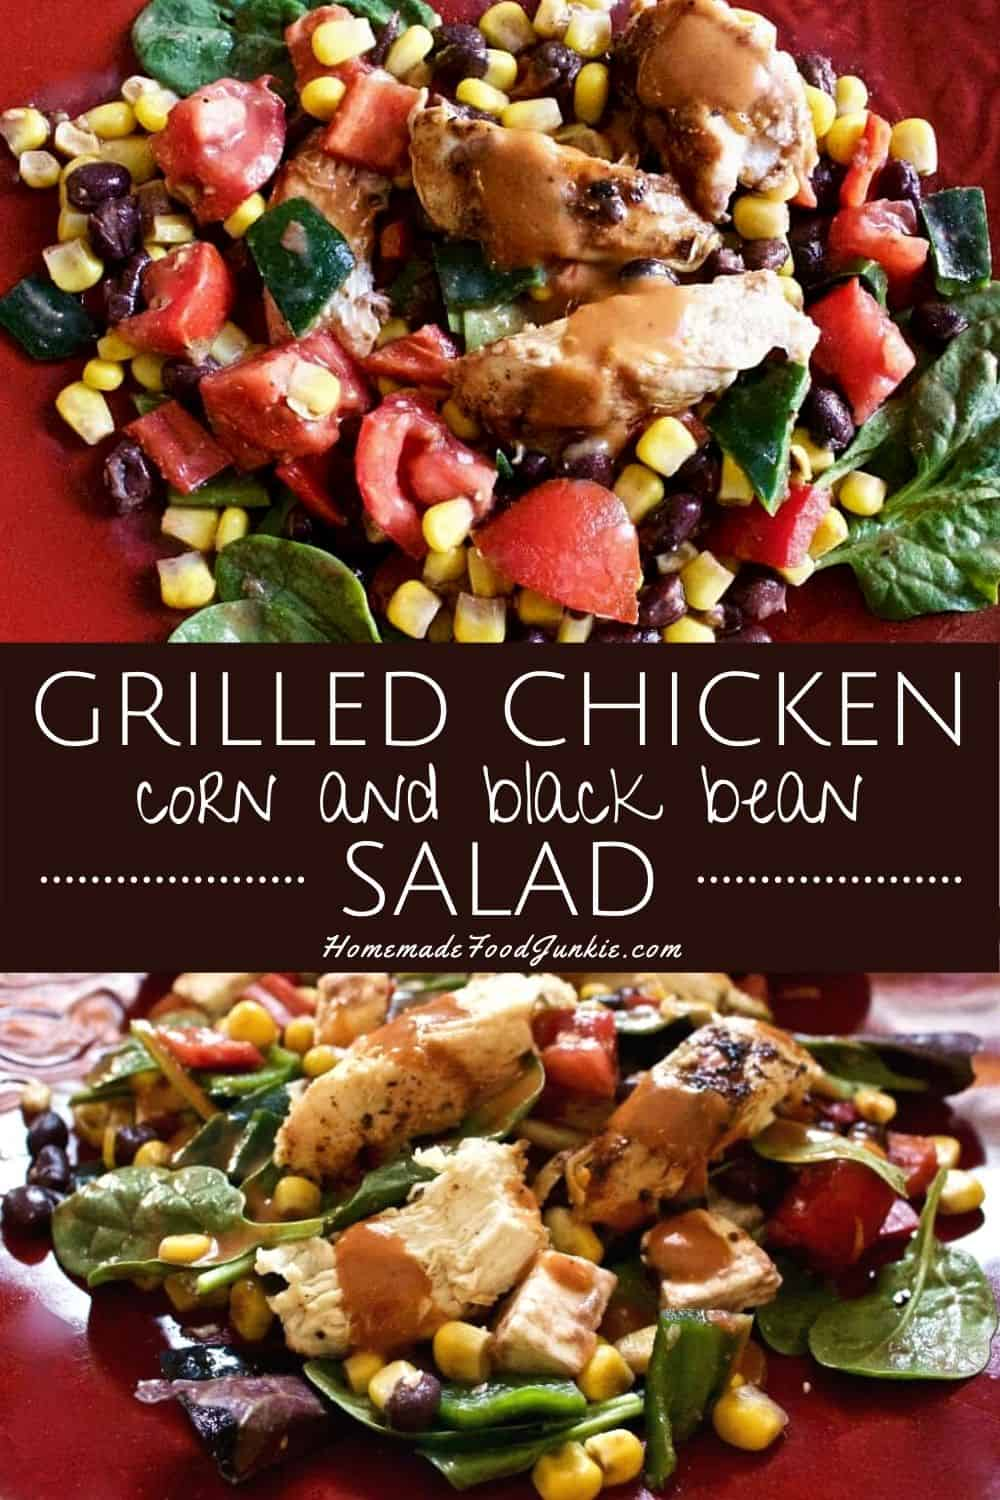 grilled chicken corn and black bean salad-pin image